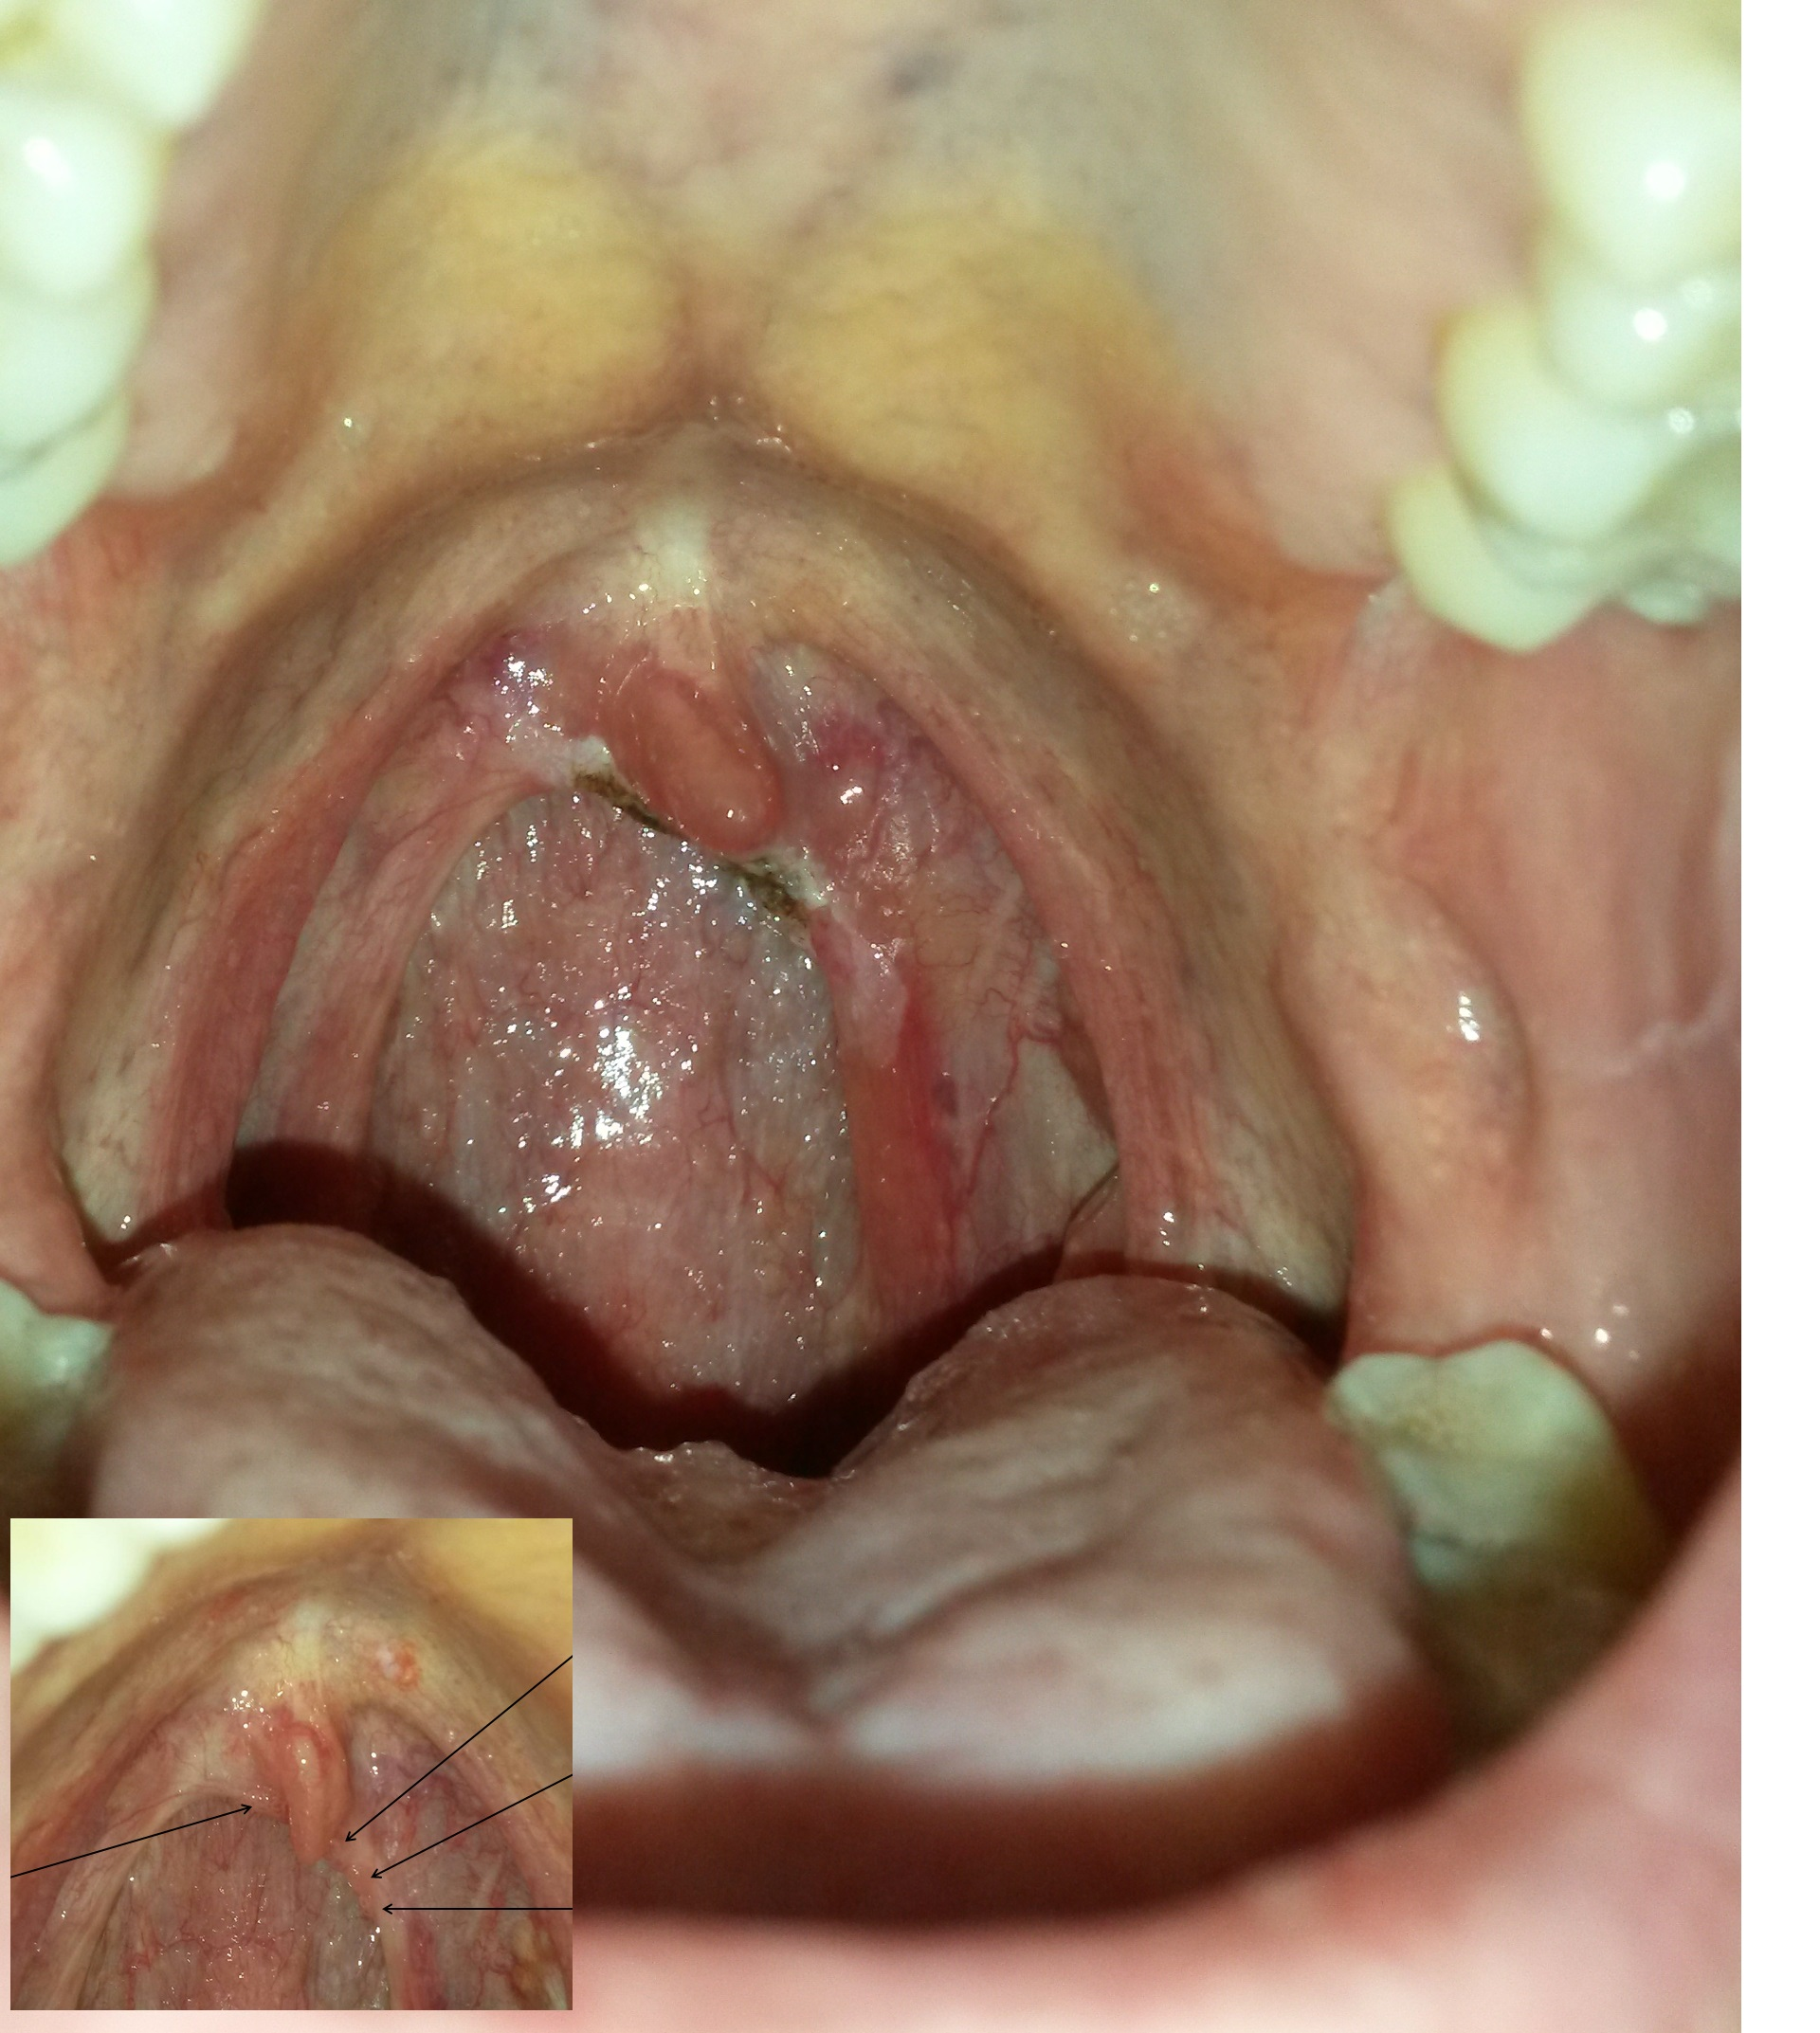 Hpv warts throat pictures